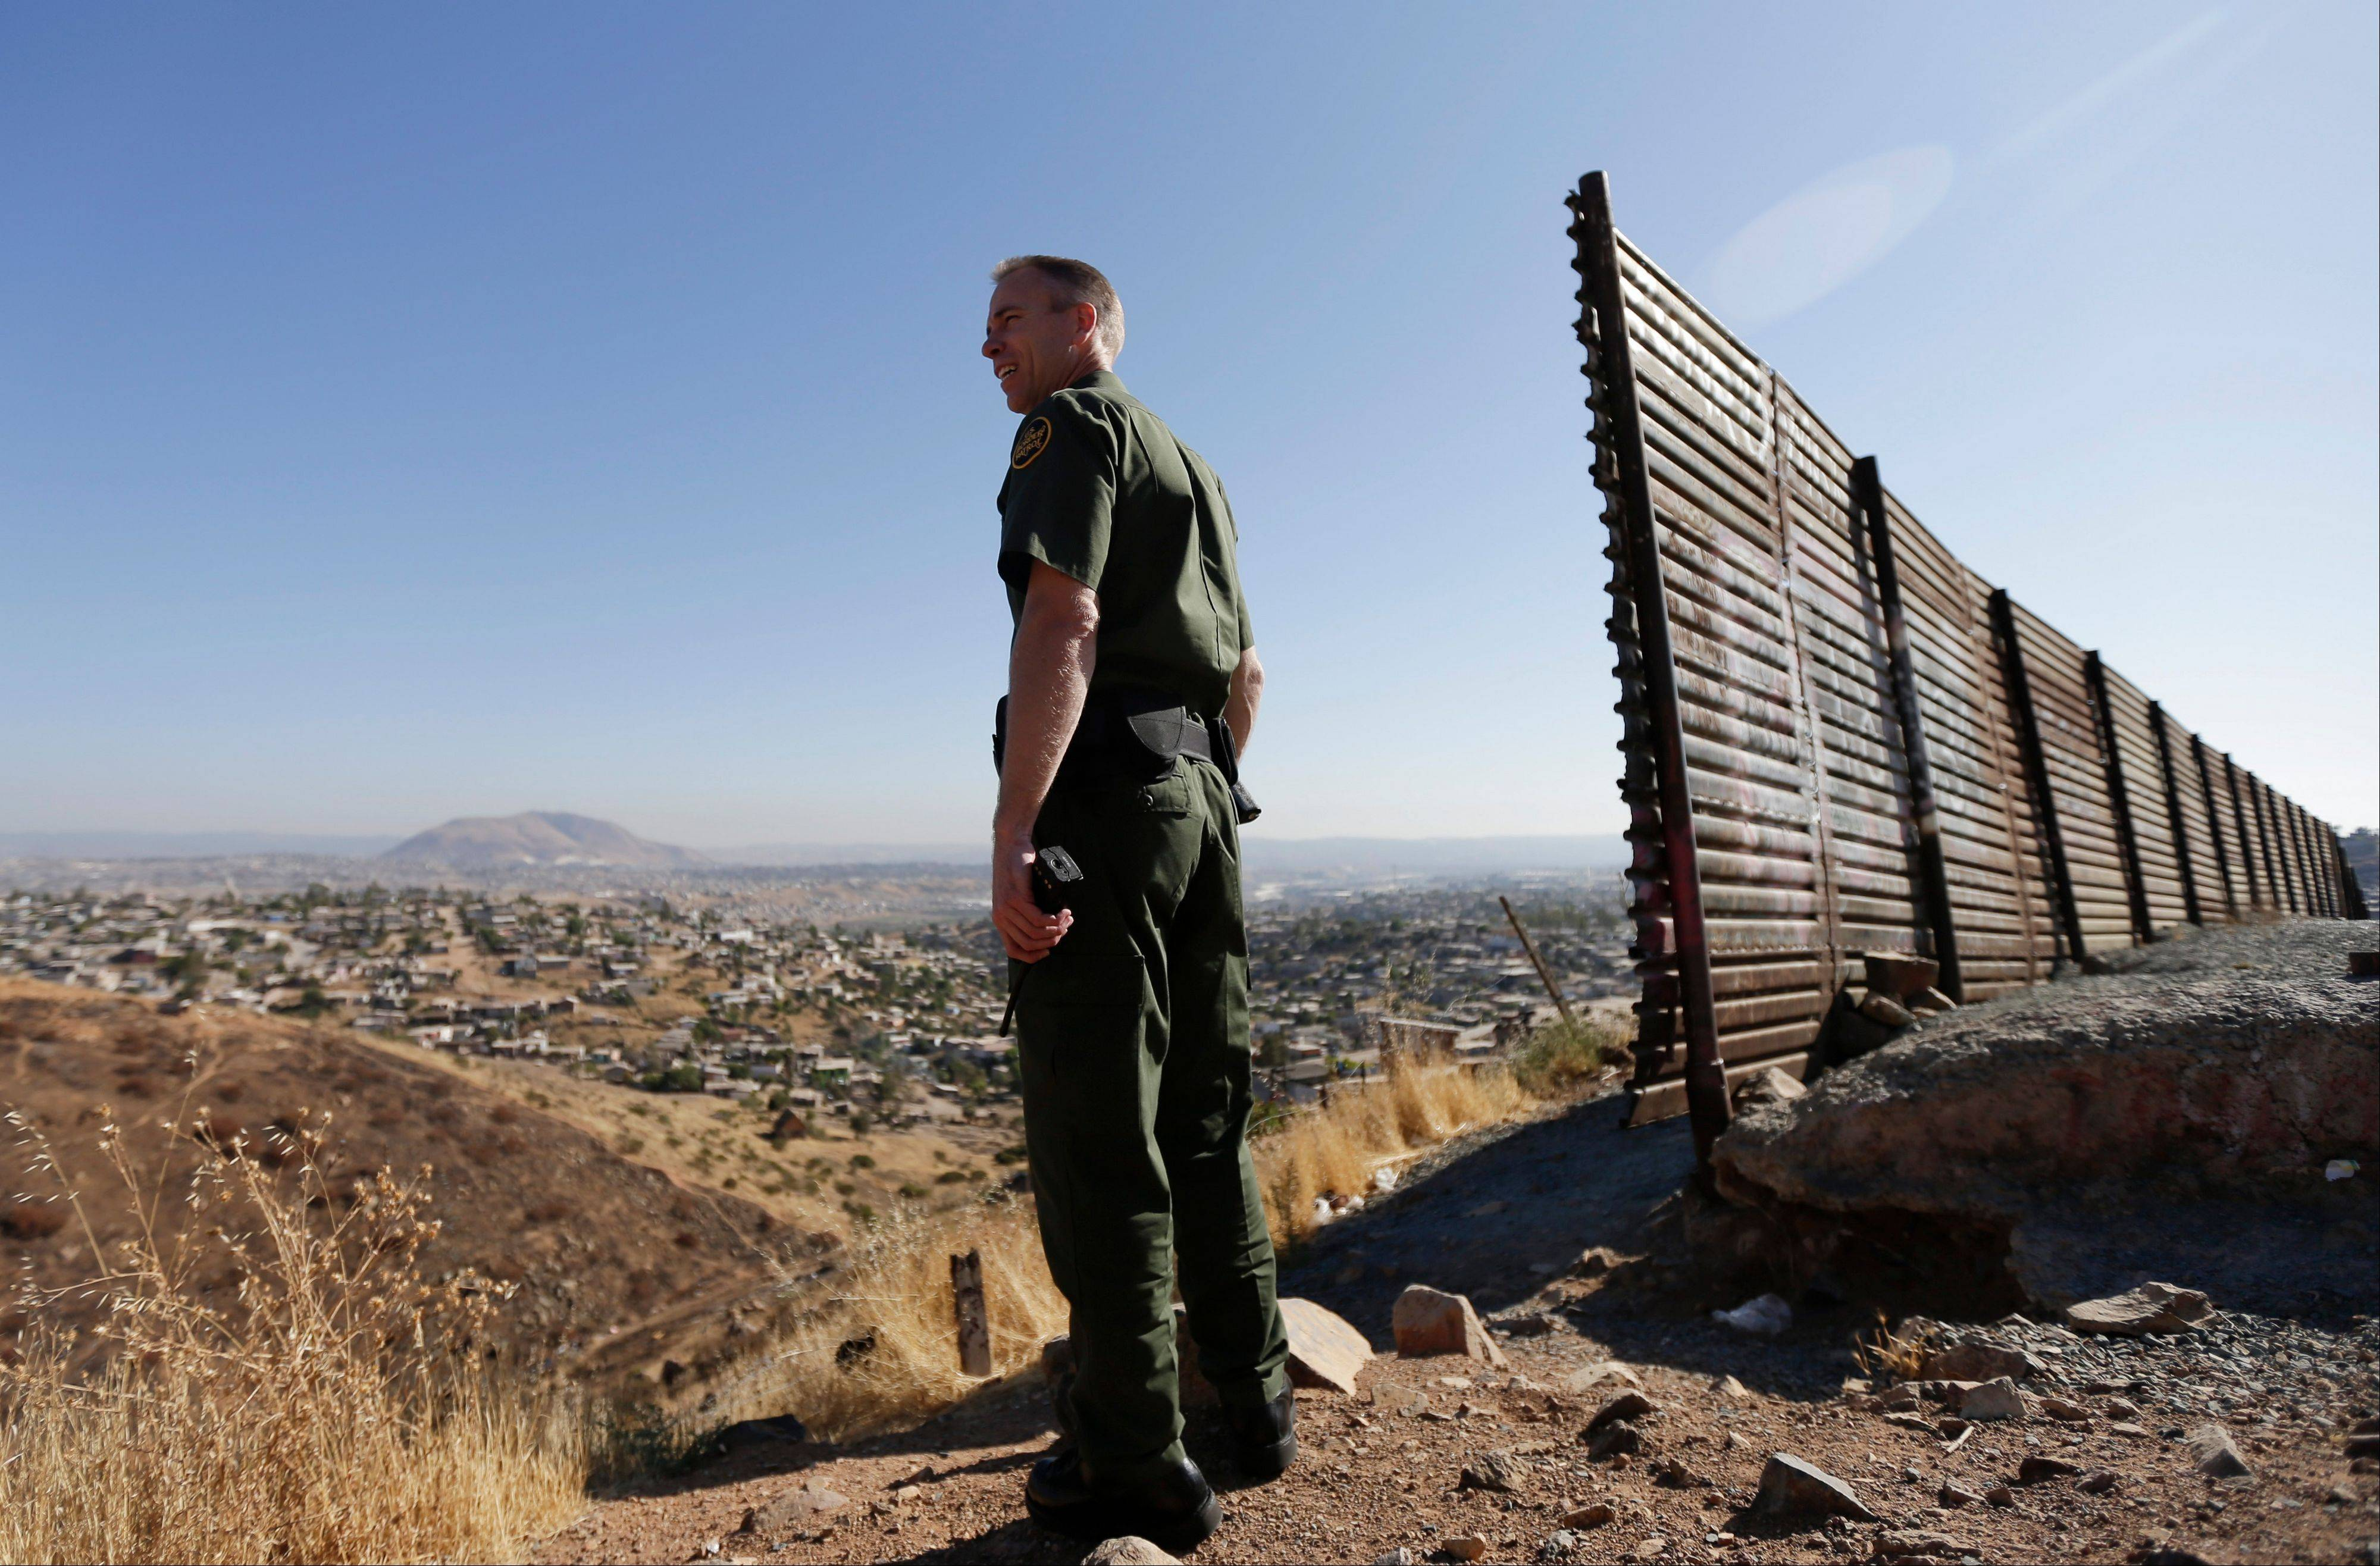 Associated Press In this June 13, 2013 file photo, US Border Patrol agent Jerry Conlin looks out over Tijuana, Mexico, behind, along the old border wall along the US - Mexico border, where it ends at the base of a hill in San Diego. After dropping during the recession, the number of immigrants crossing the border illegally into the U.S. appears to be on the rise again, according to a report released Monday, Sept. 23, 2013 by Pew Research Center's Hispanic Trends Project.